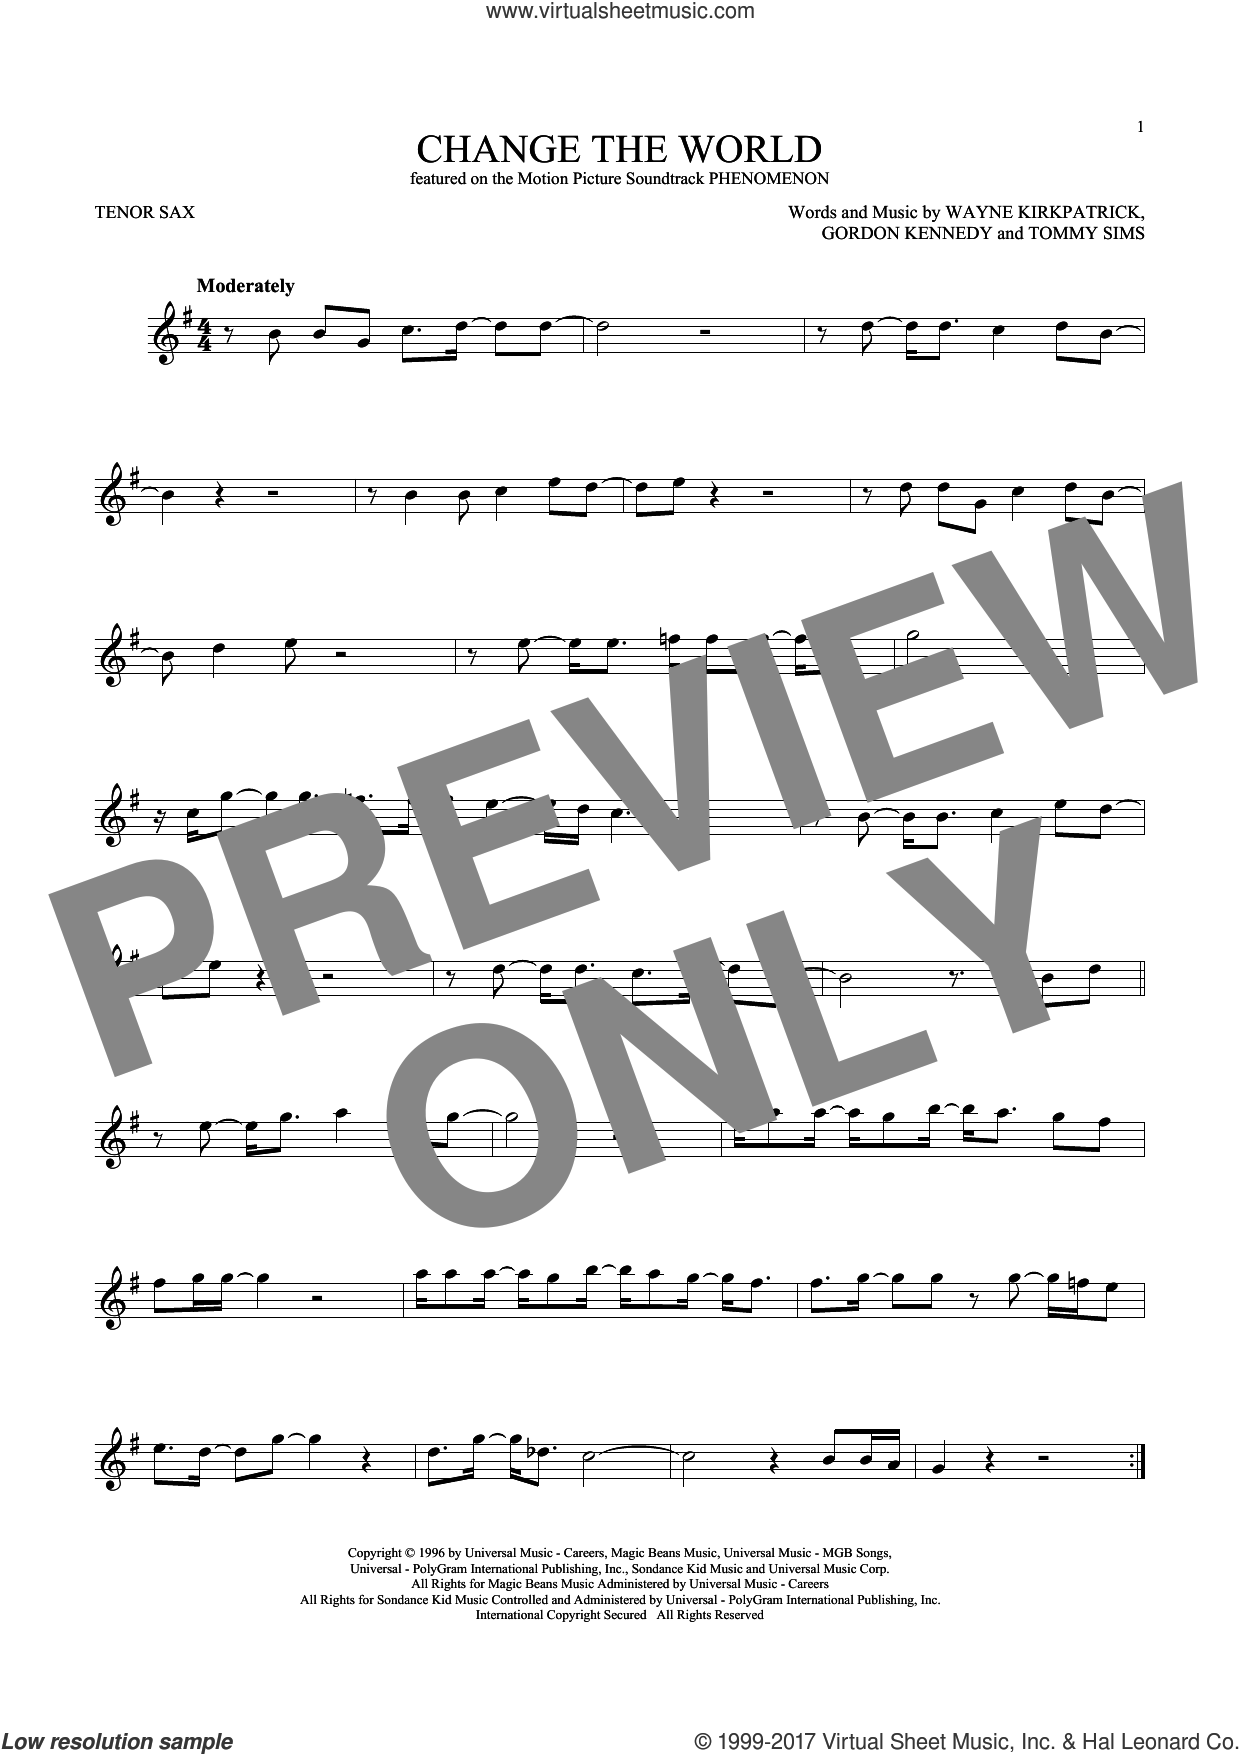 Change The World sheet music for tenor saxophone solo ( Sax) by Wayne Kirkpatrick, Eric Clapton, Wynonna, Gordon Kennedy and Tommy Sims. Score Image Preview.